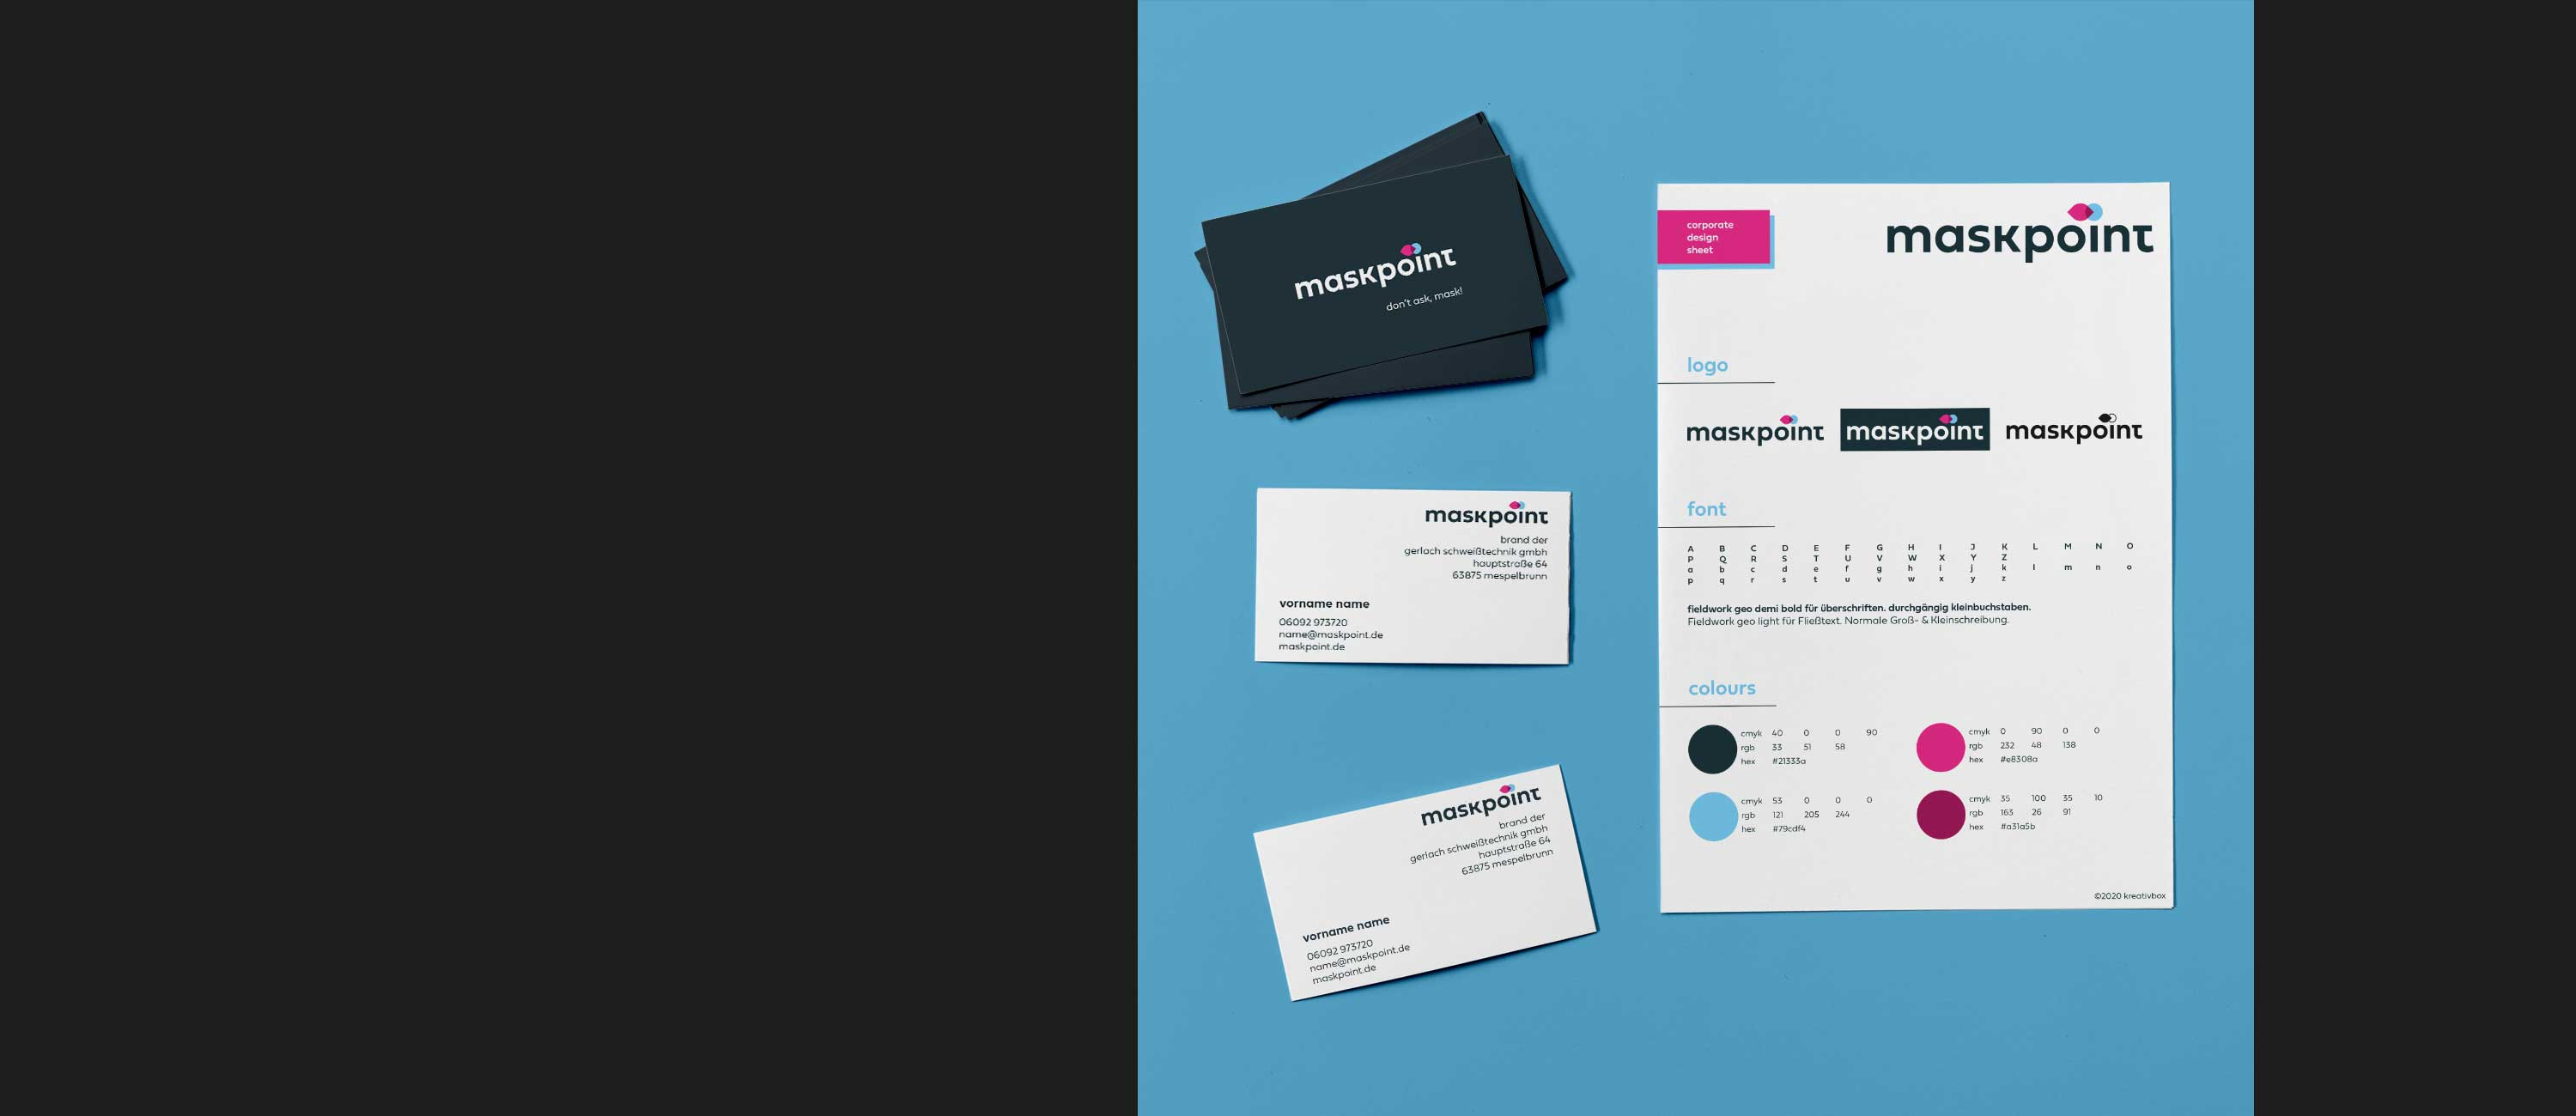 kreativbox - Corporate Design - maskpoint